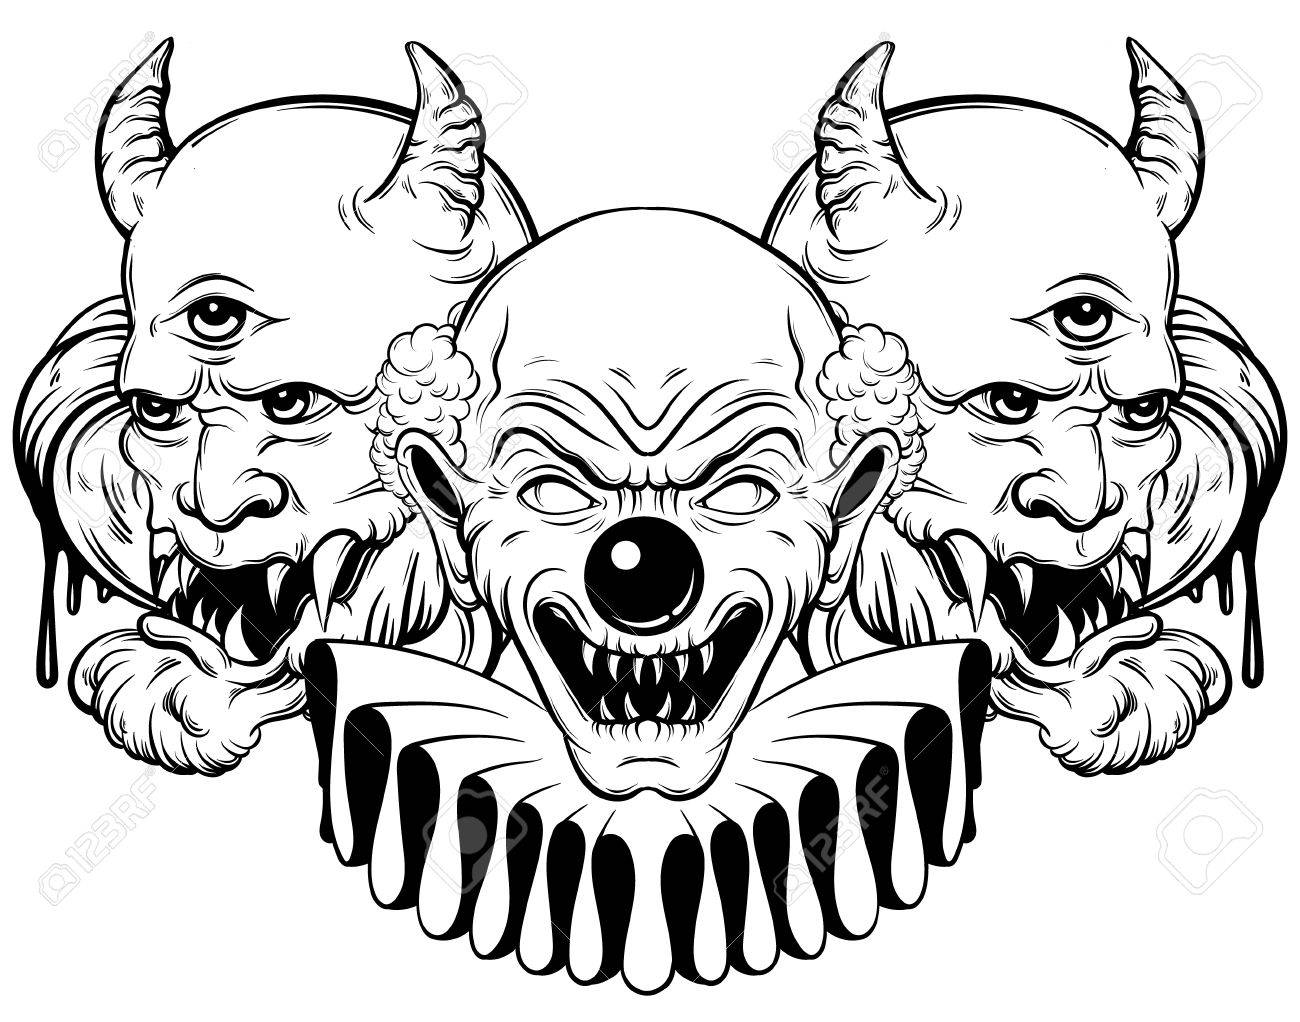 1300x1022 Vector Hand Drawn Illustration Of Angry Clown And Daemon. Tattoo